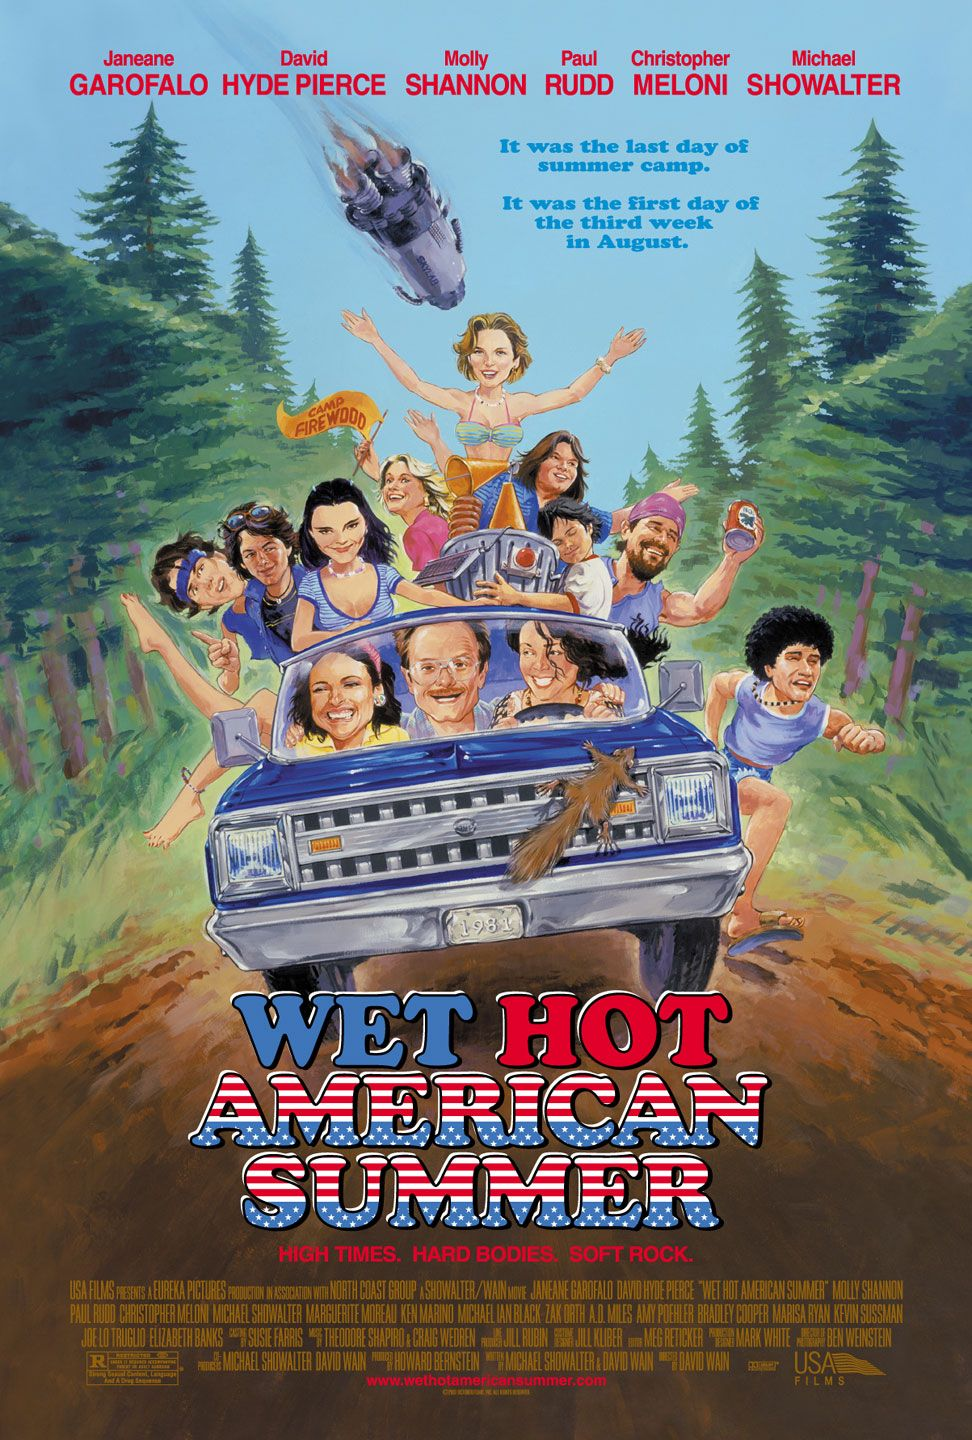 Poster for Wet Hot American Summer